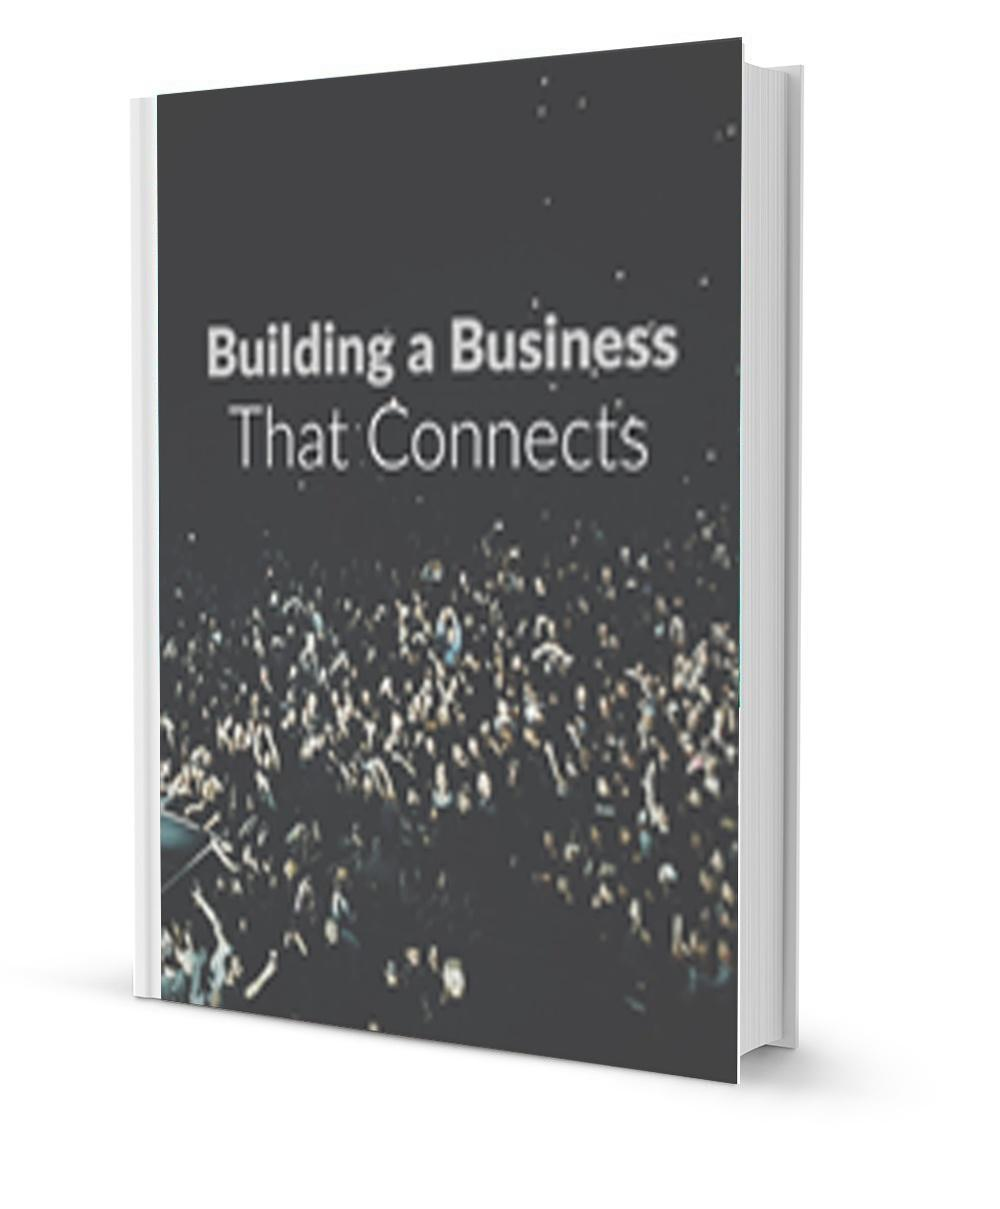 Building a Business That Connects